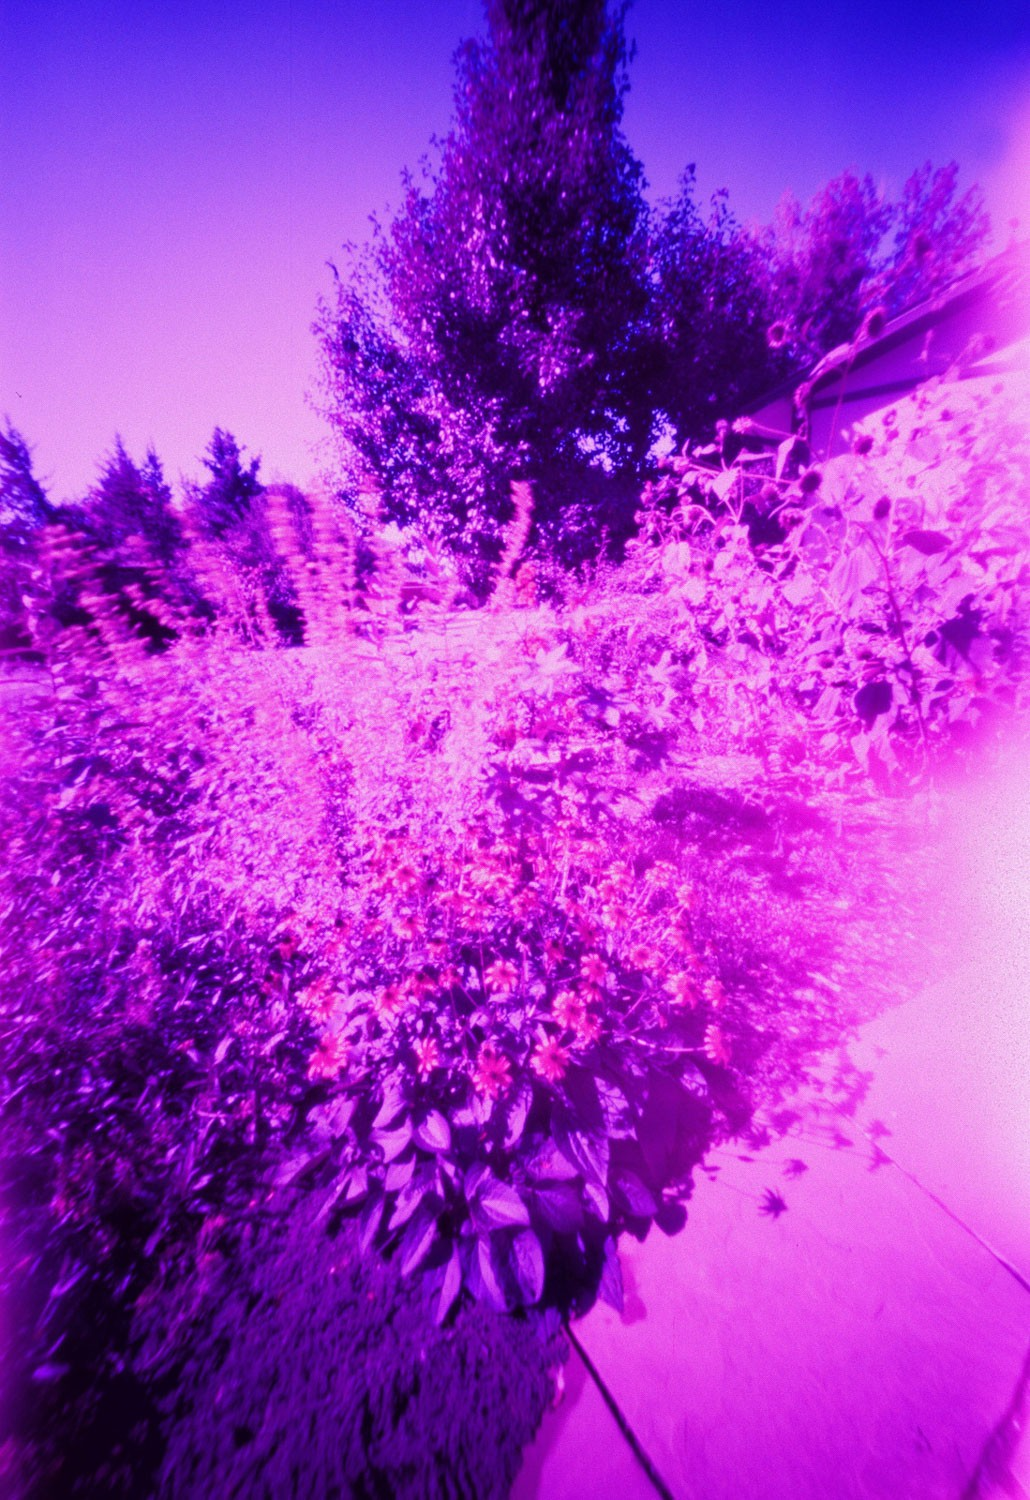 Figure 9 - LomoChrome Purple XR 100-400 - Pinhole (20 seconds)